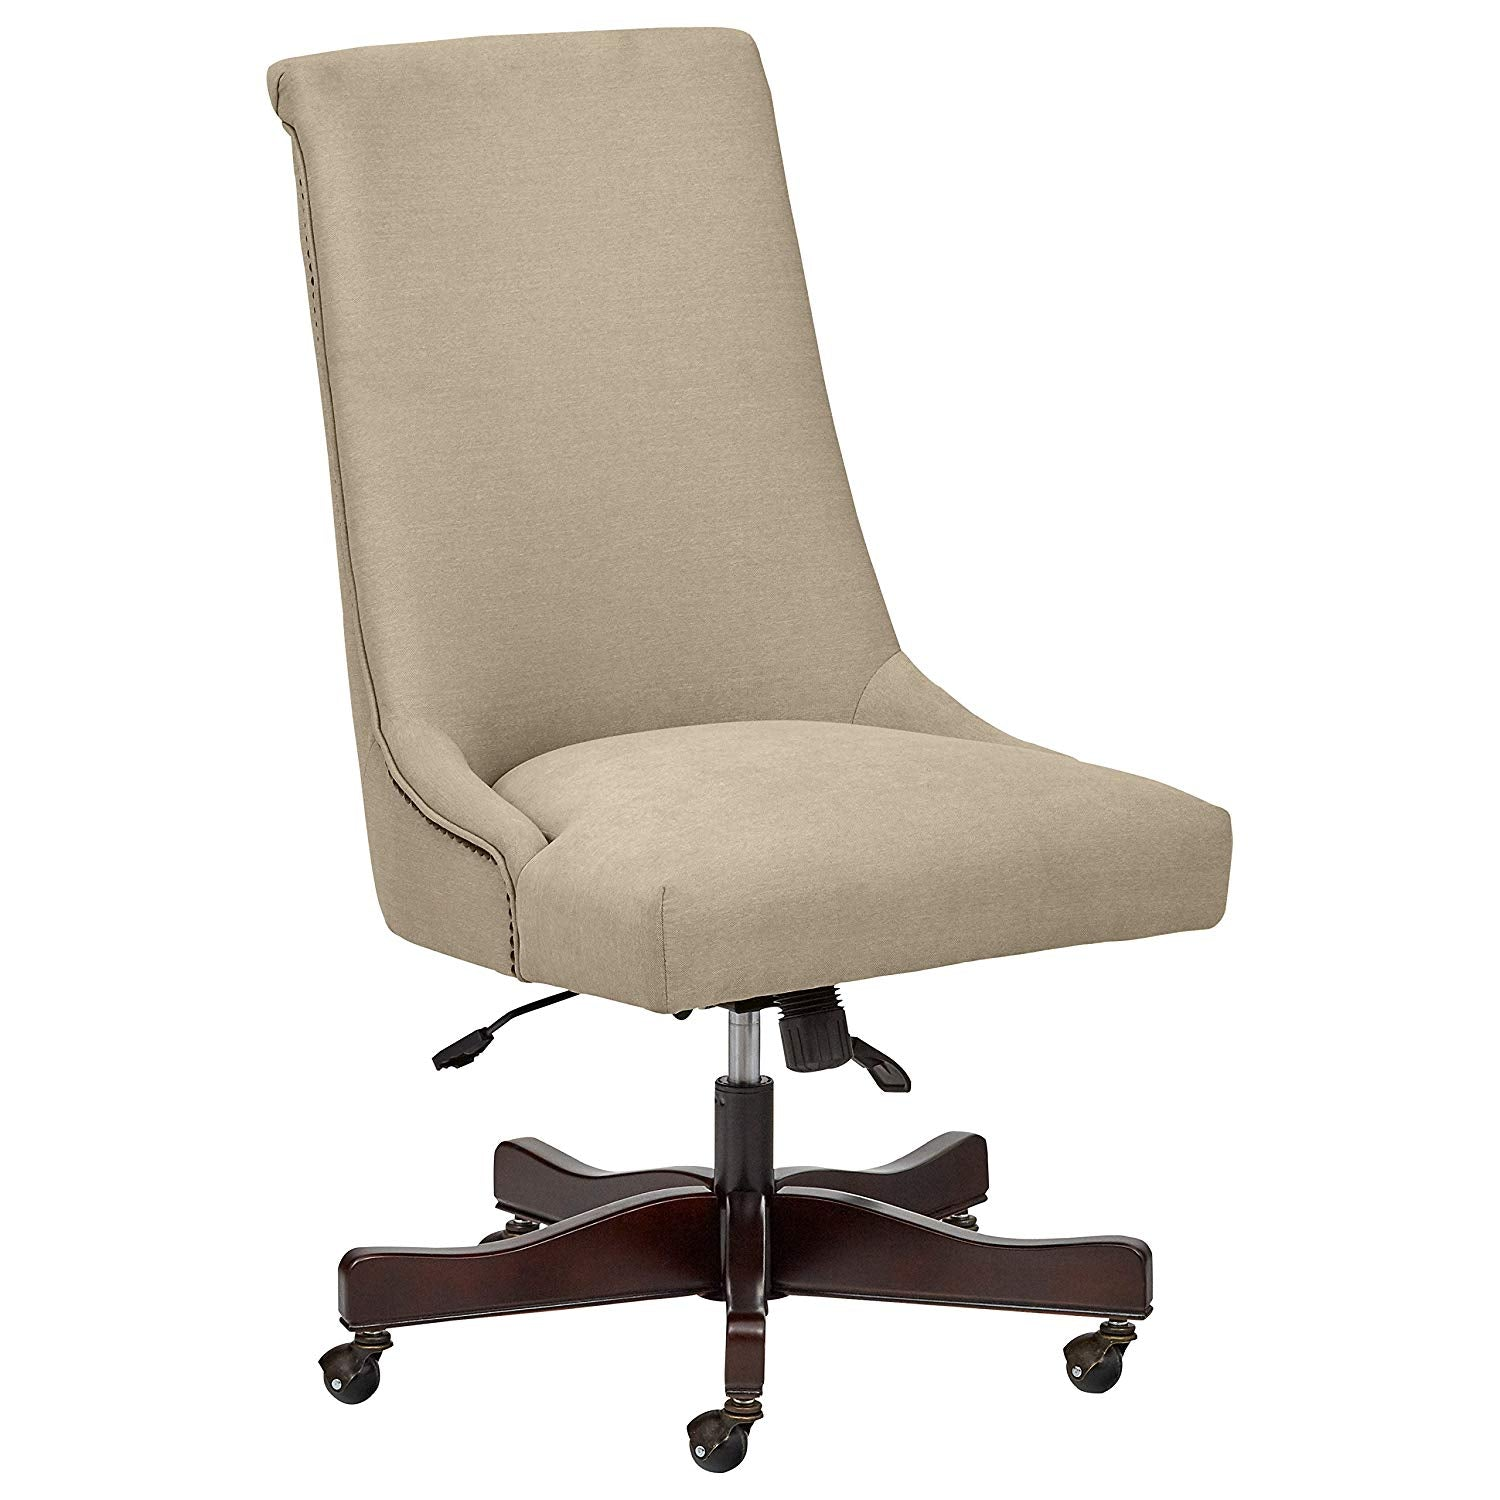 Nailhead Swivel Office Chair with Wheels, 28.4